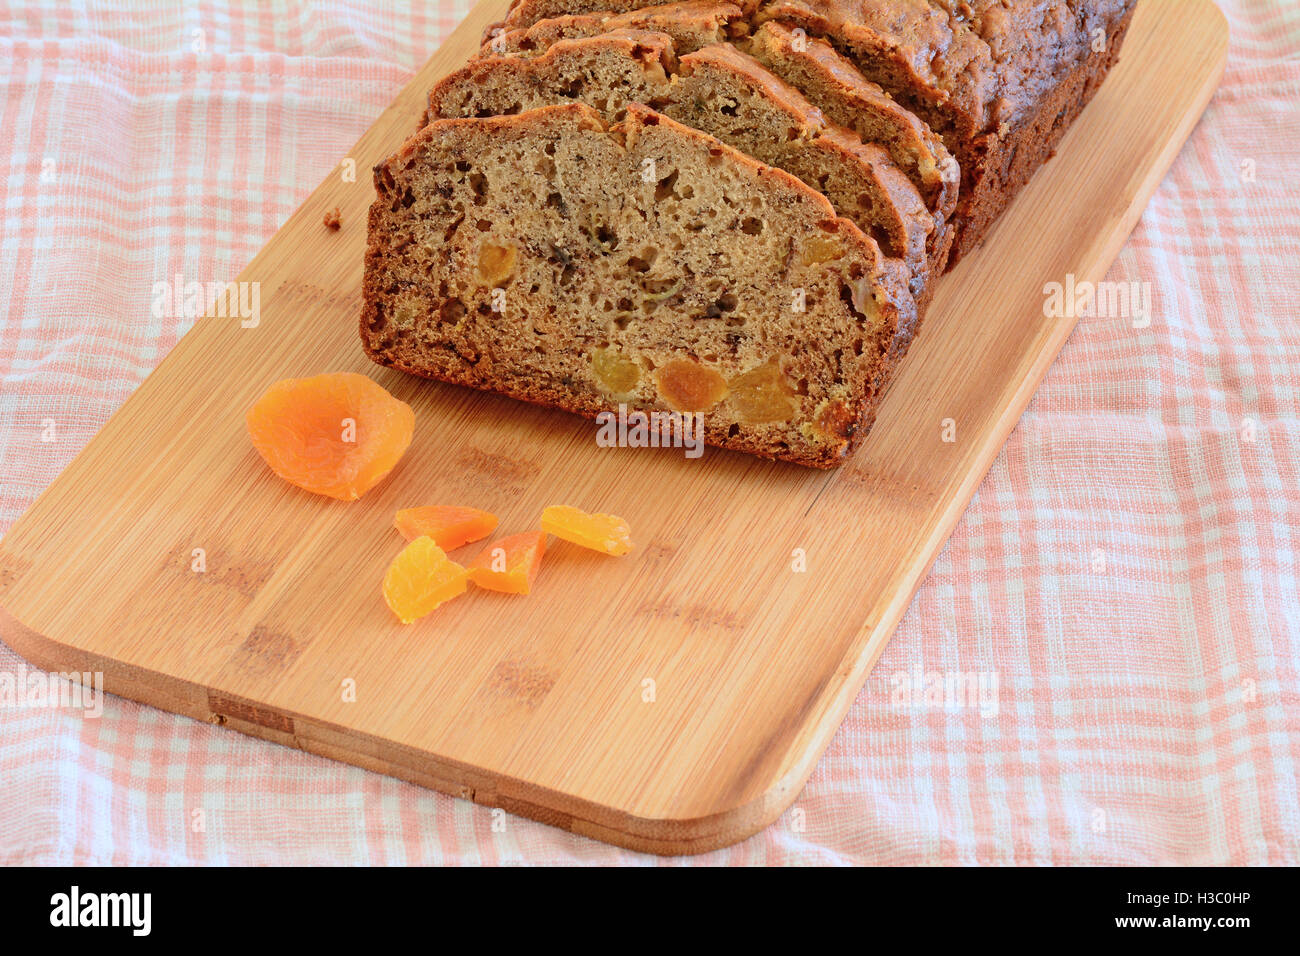 Fresh baked banana bread with sweet apricot pieces in horizontal format - Stock Image